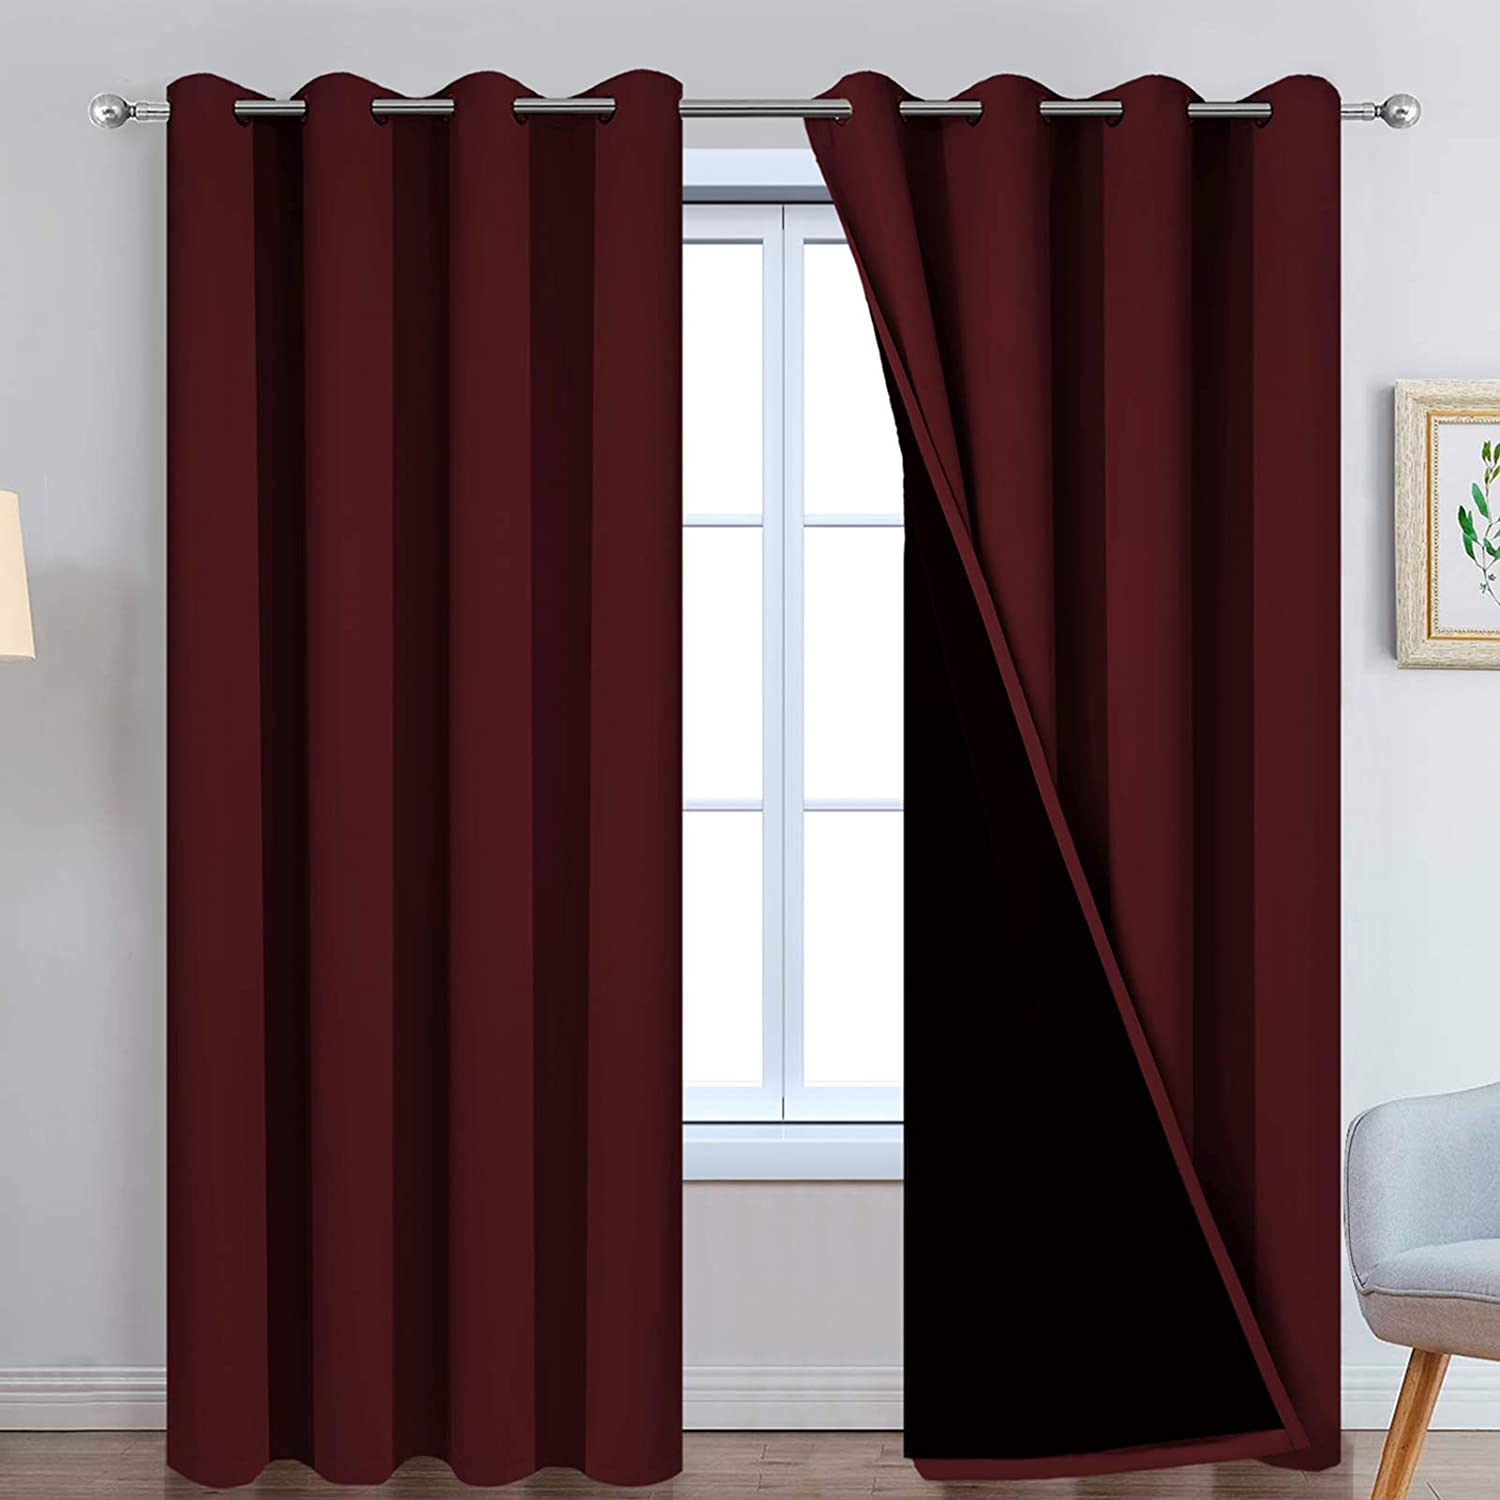 Yakamok 100% Blackout Curtains for Living Room, Noise Reducing Drapes ,Thermal Insulated Blackout Curtains for Bedroom(52Wx84L, Burgundy Red, 2 Panels)